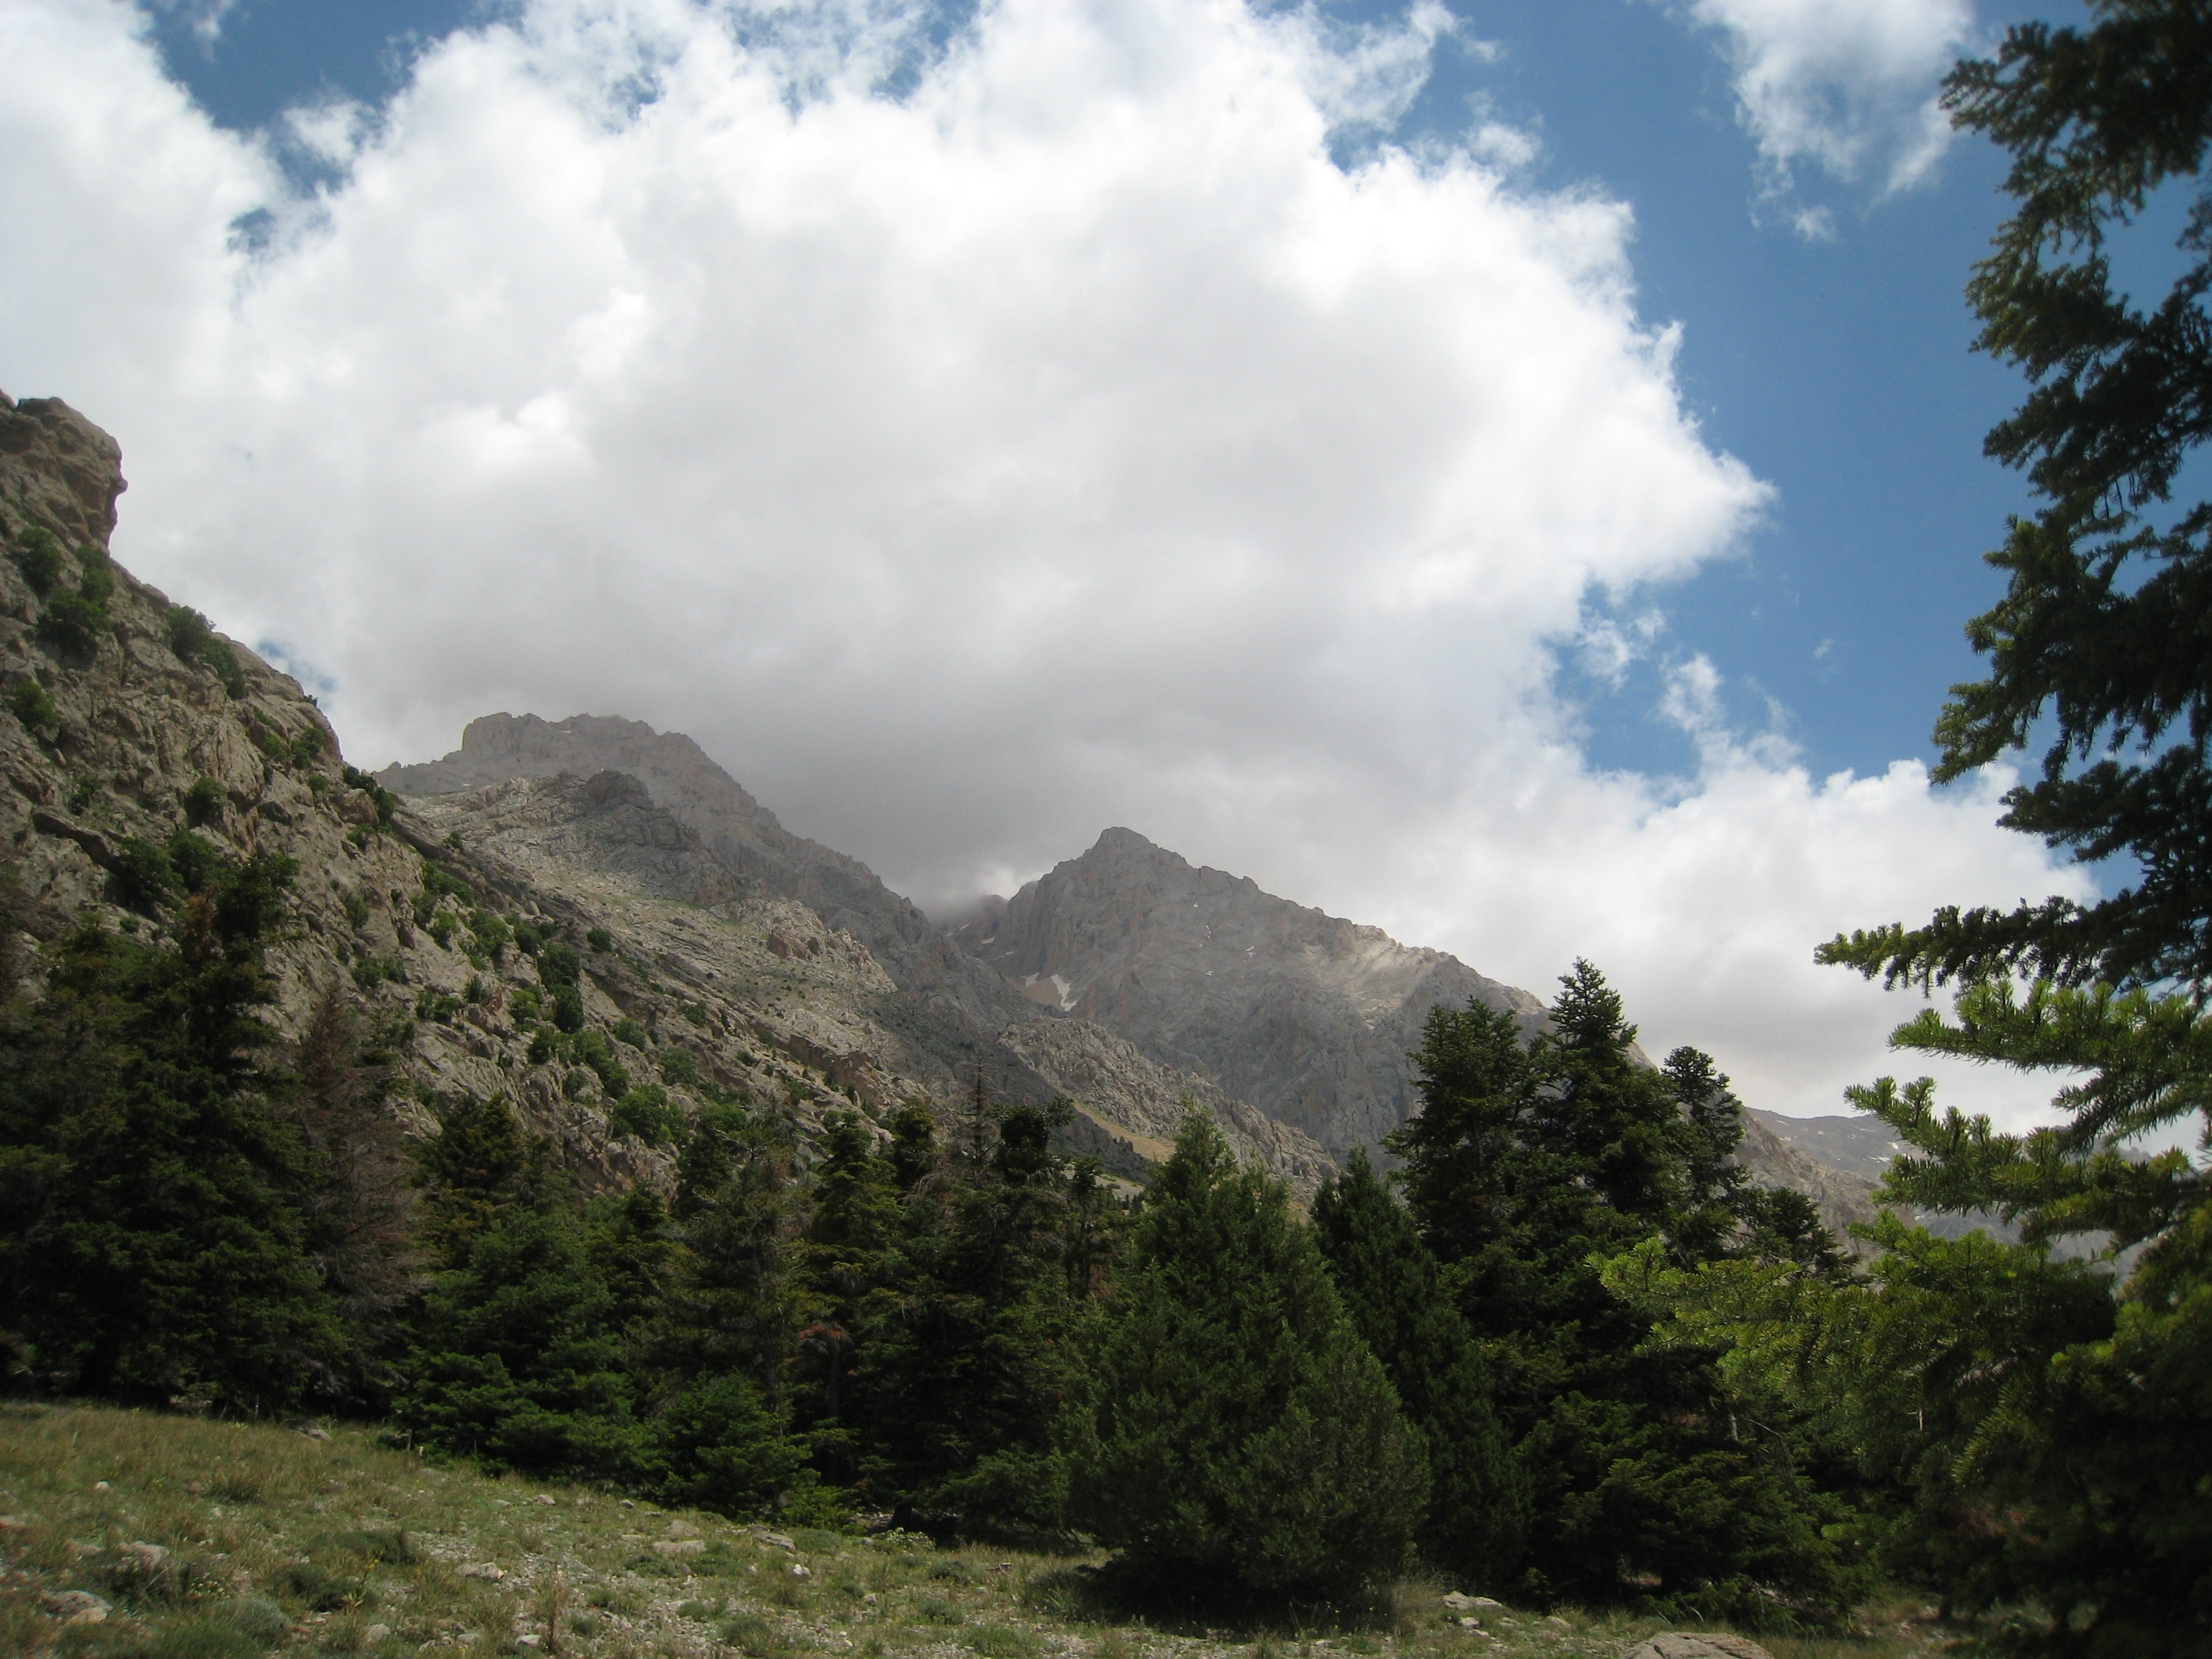 Image of Cilician fir